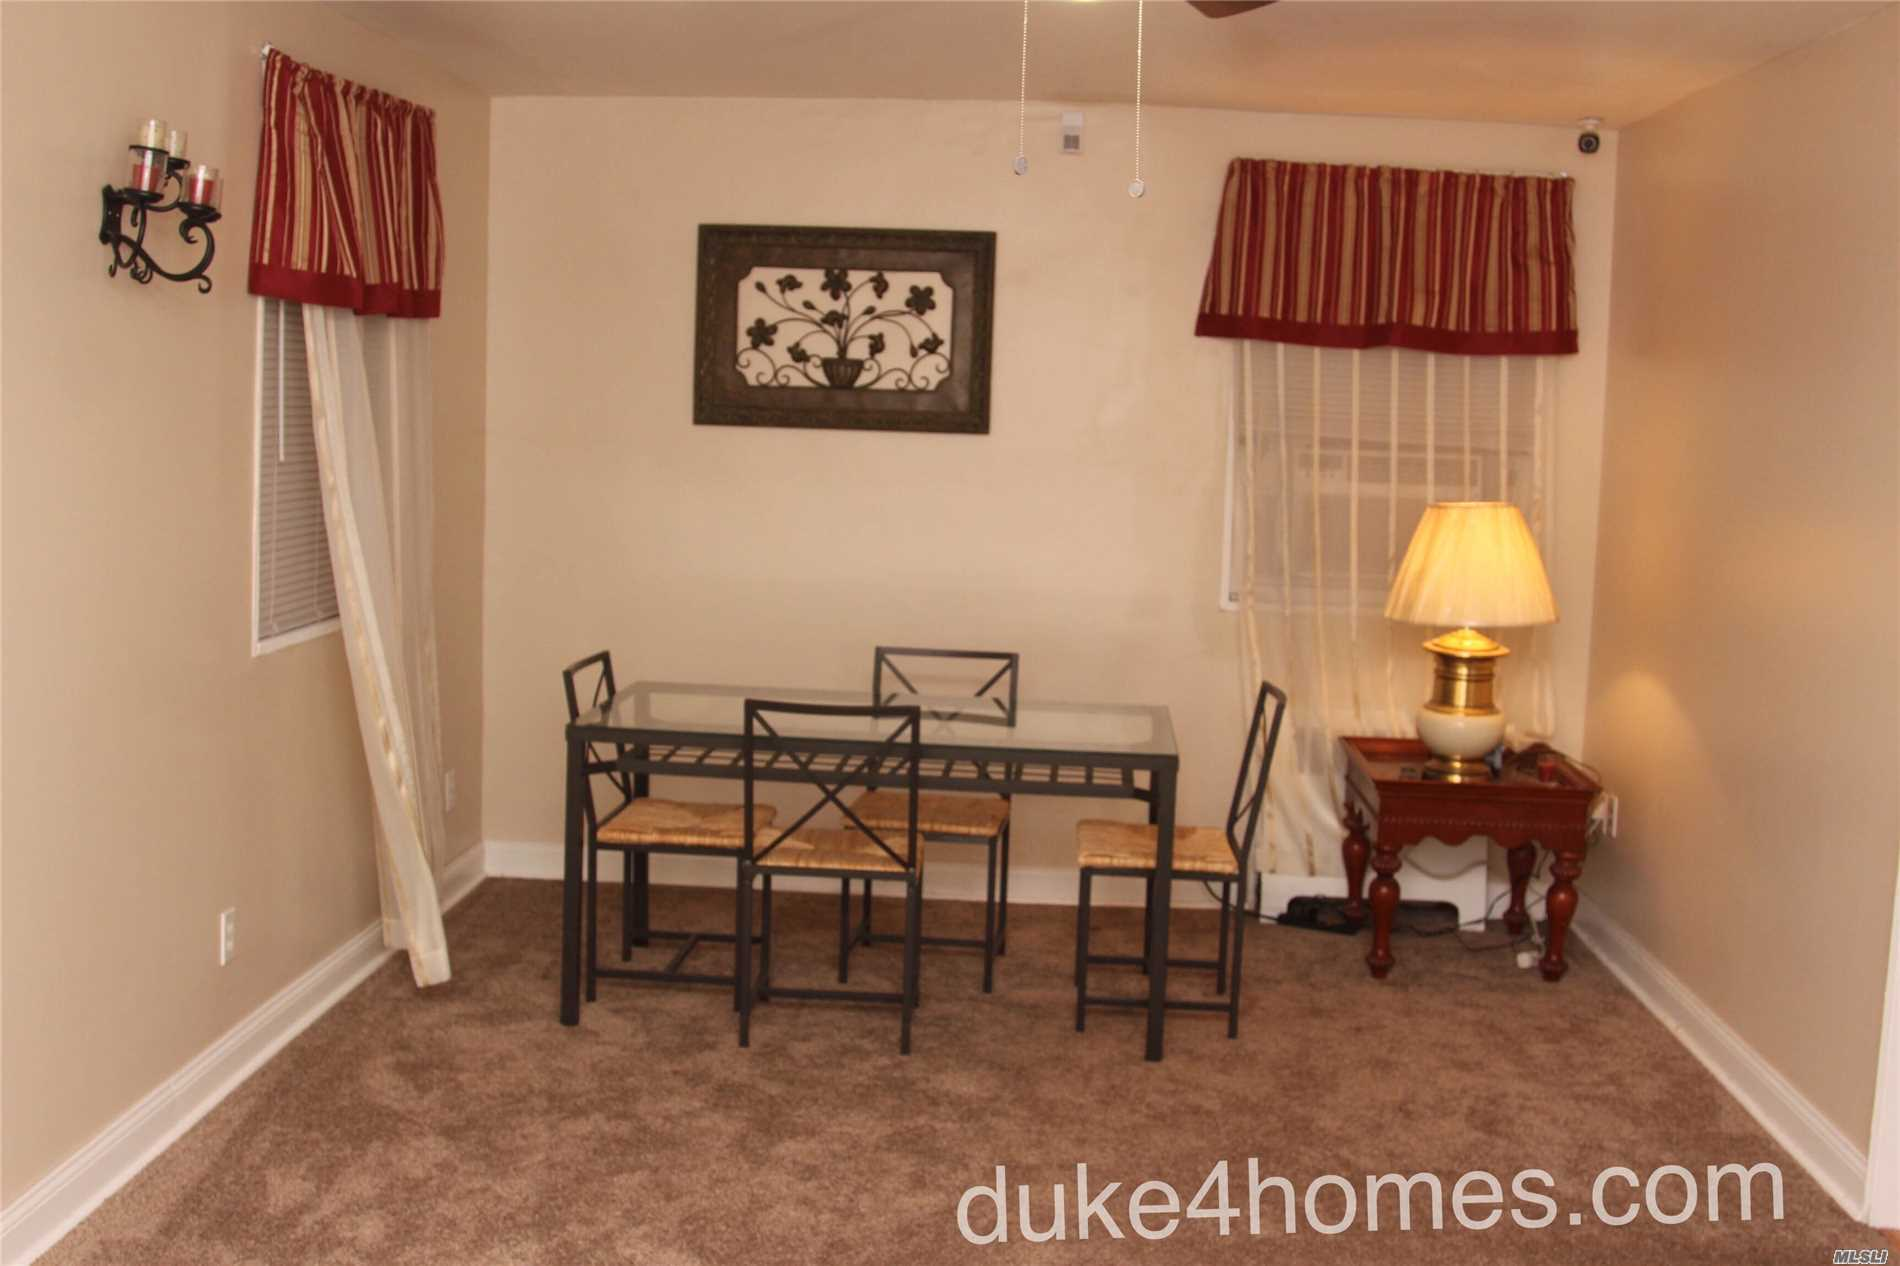 Spacious 1 Bedroom Coop Apt On The 2nd Fl With Updated Bathroom And Kitchen. Enter The Apt Into The Foyer And Up The Stairs To The Living Room And Dinning Area. There Are Several Closets And An Accessible Attic Space For More Storage. The Apt Comes Lots Of Extra Bonuses; 3 Flat Screen Wall Mounted Tvs, 2 Ceiling Fans, Hard Wire Security System, Alarm System And 2 Ac Units. The Apt Has Also Been Updated W/ New Electrical Wiring, Installation And Added Outlets. Make This Your New Home...